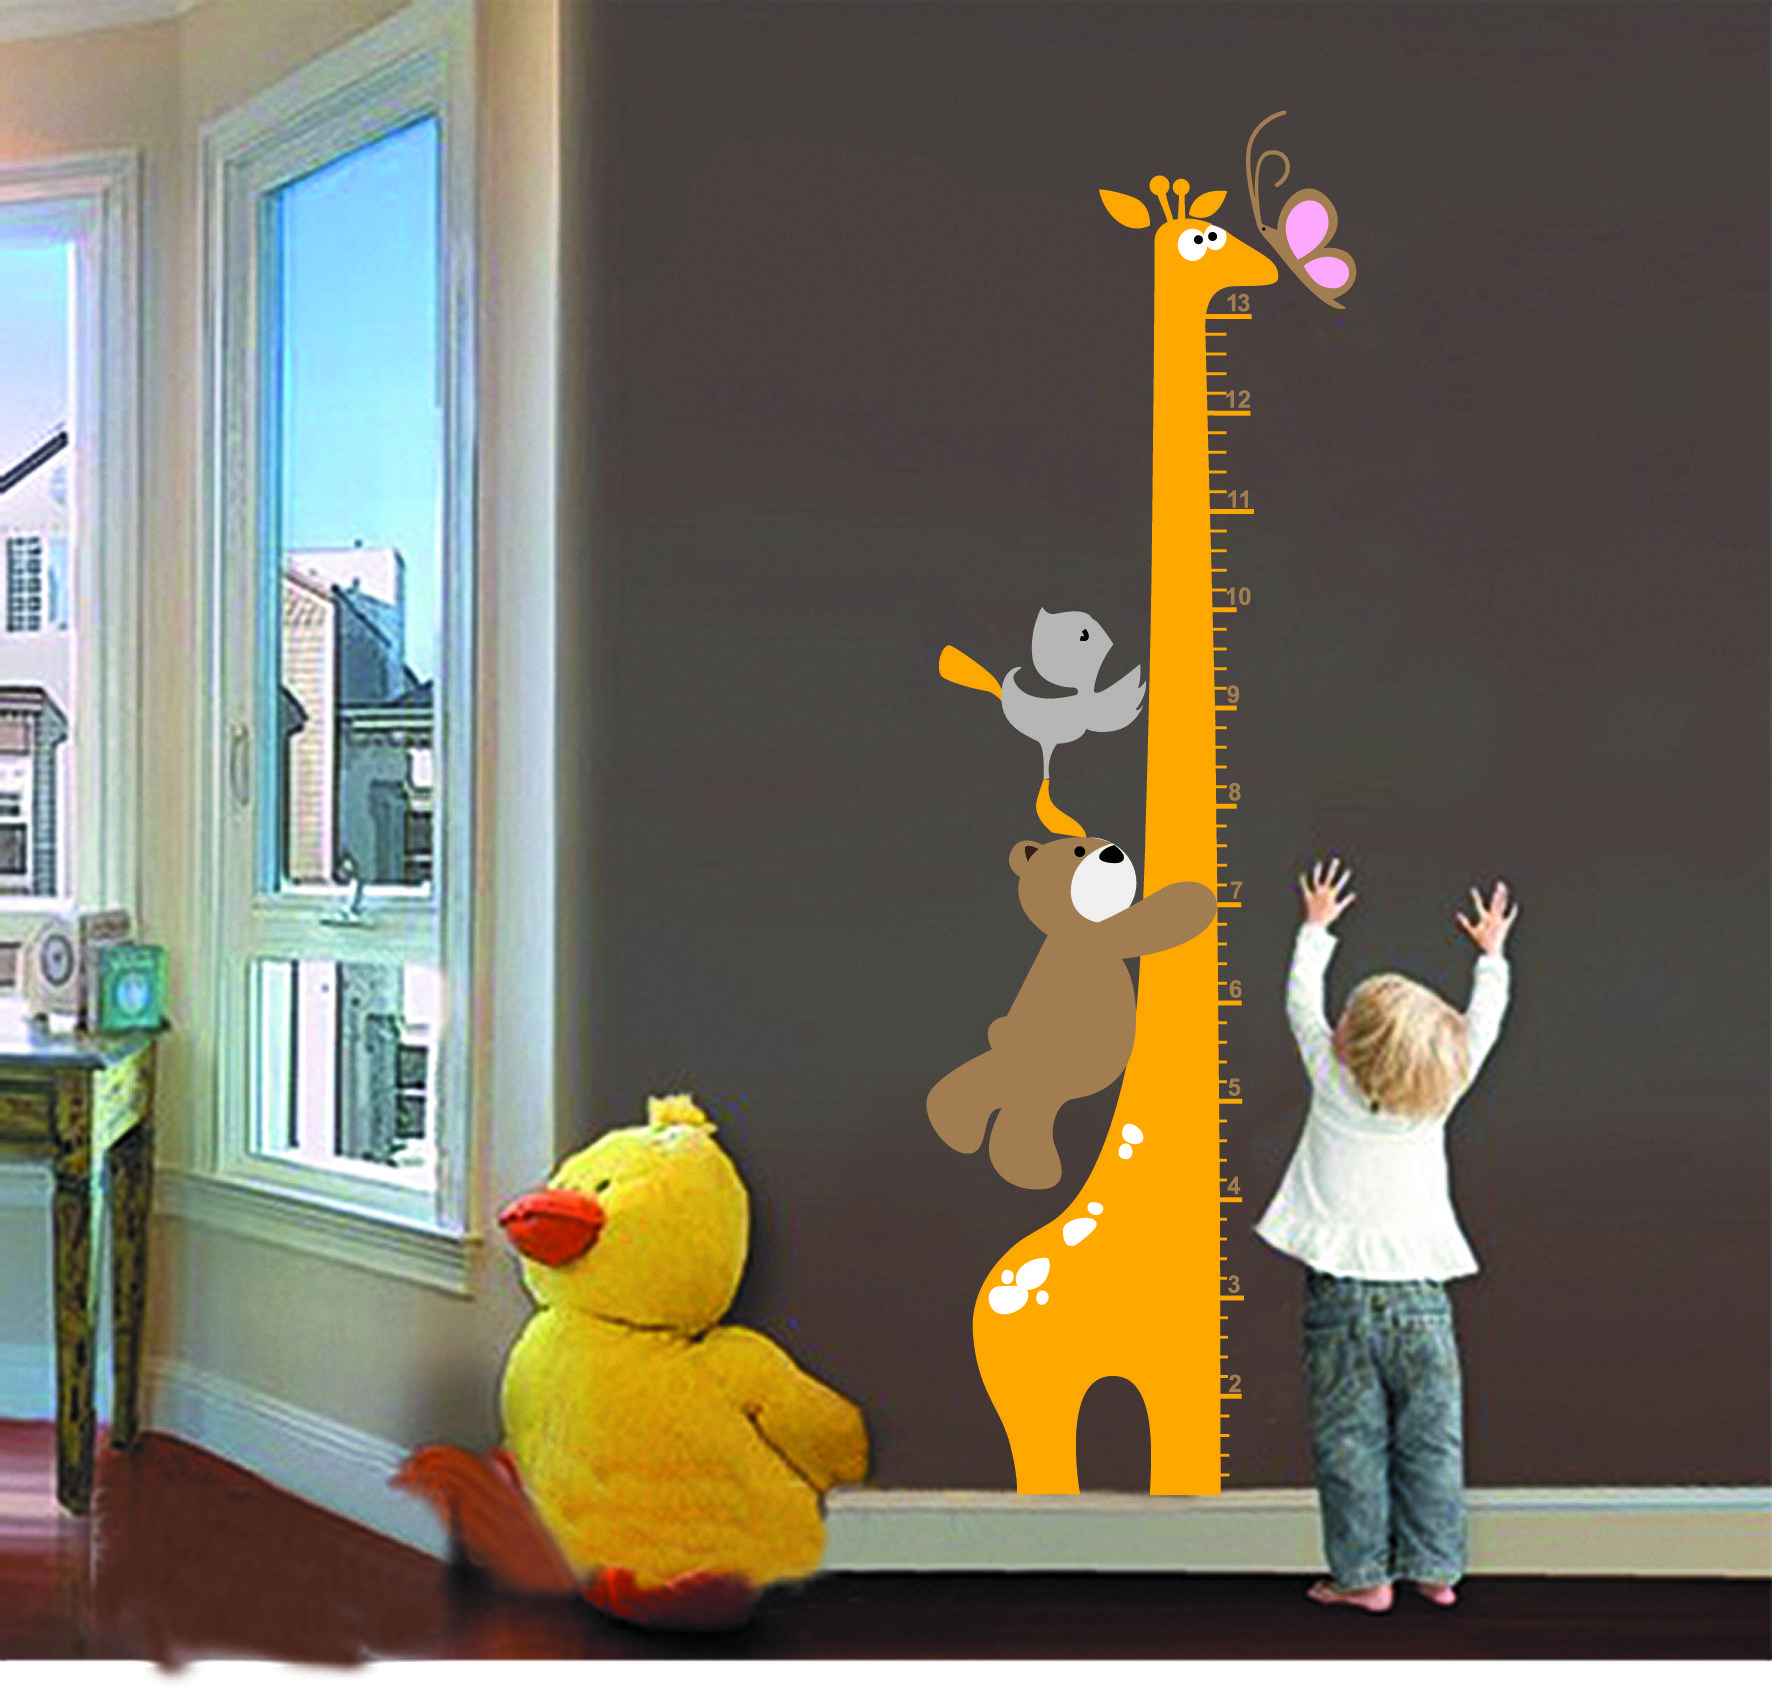 Centimeter height measurement growth chart with cartoon giraffe new cartoon giraffe bear children kid growth height chart removable wall sticker instructions the surface is smooth do not stick on the rough or nvjuhfo Choice Image